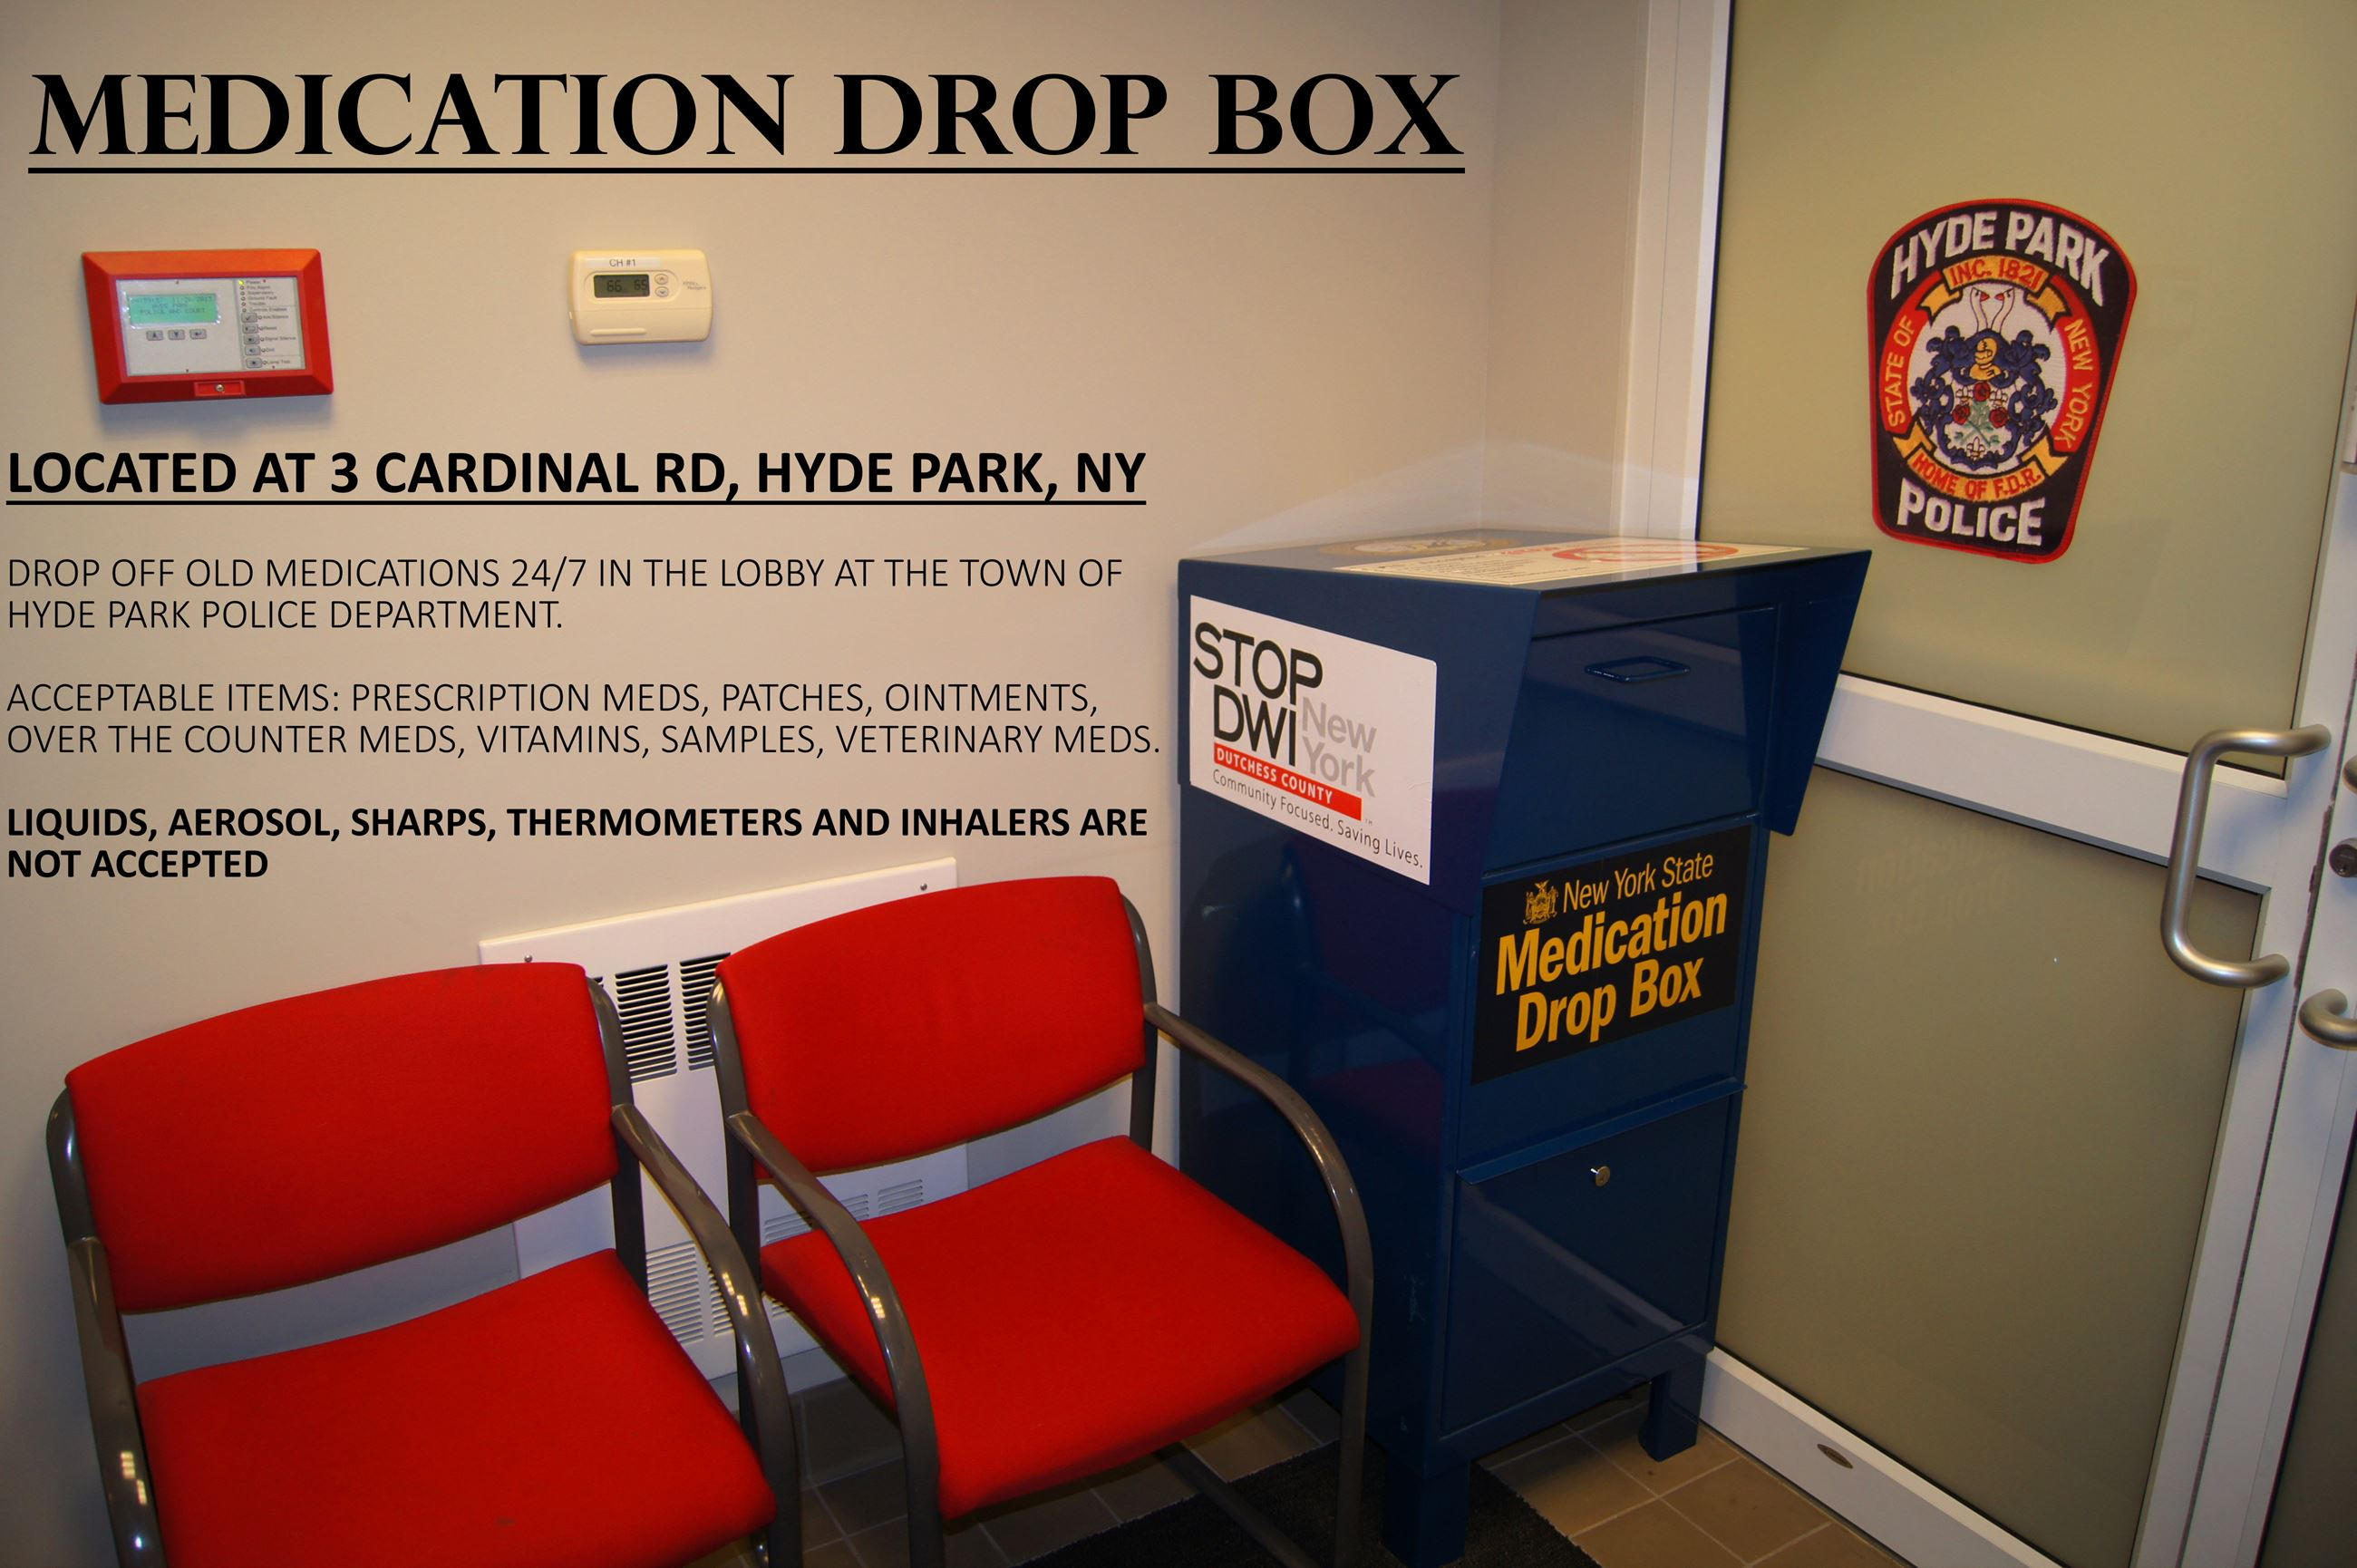 Medication Drop Box